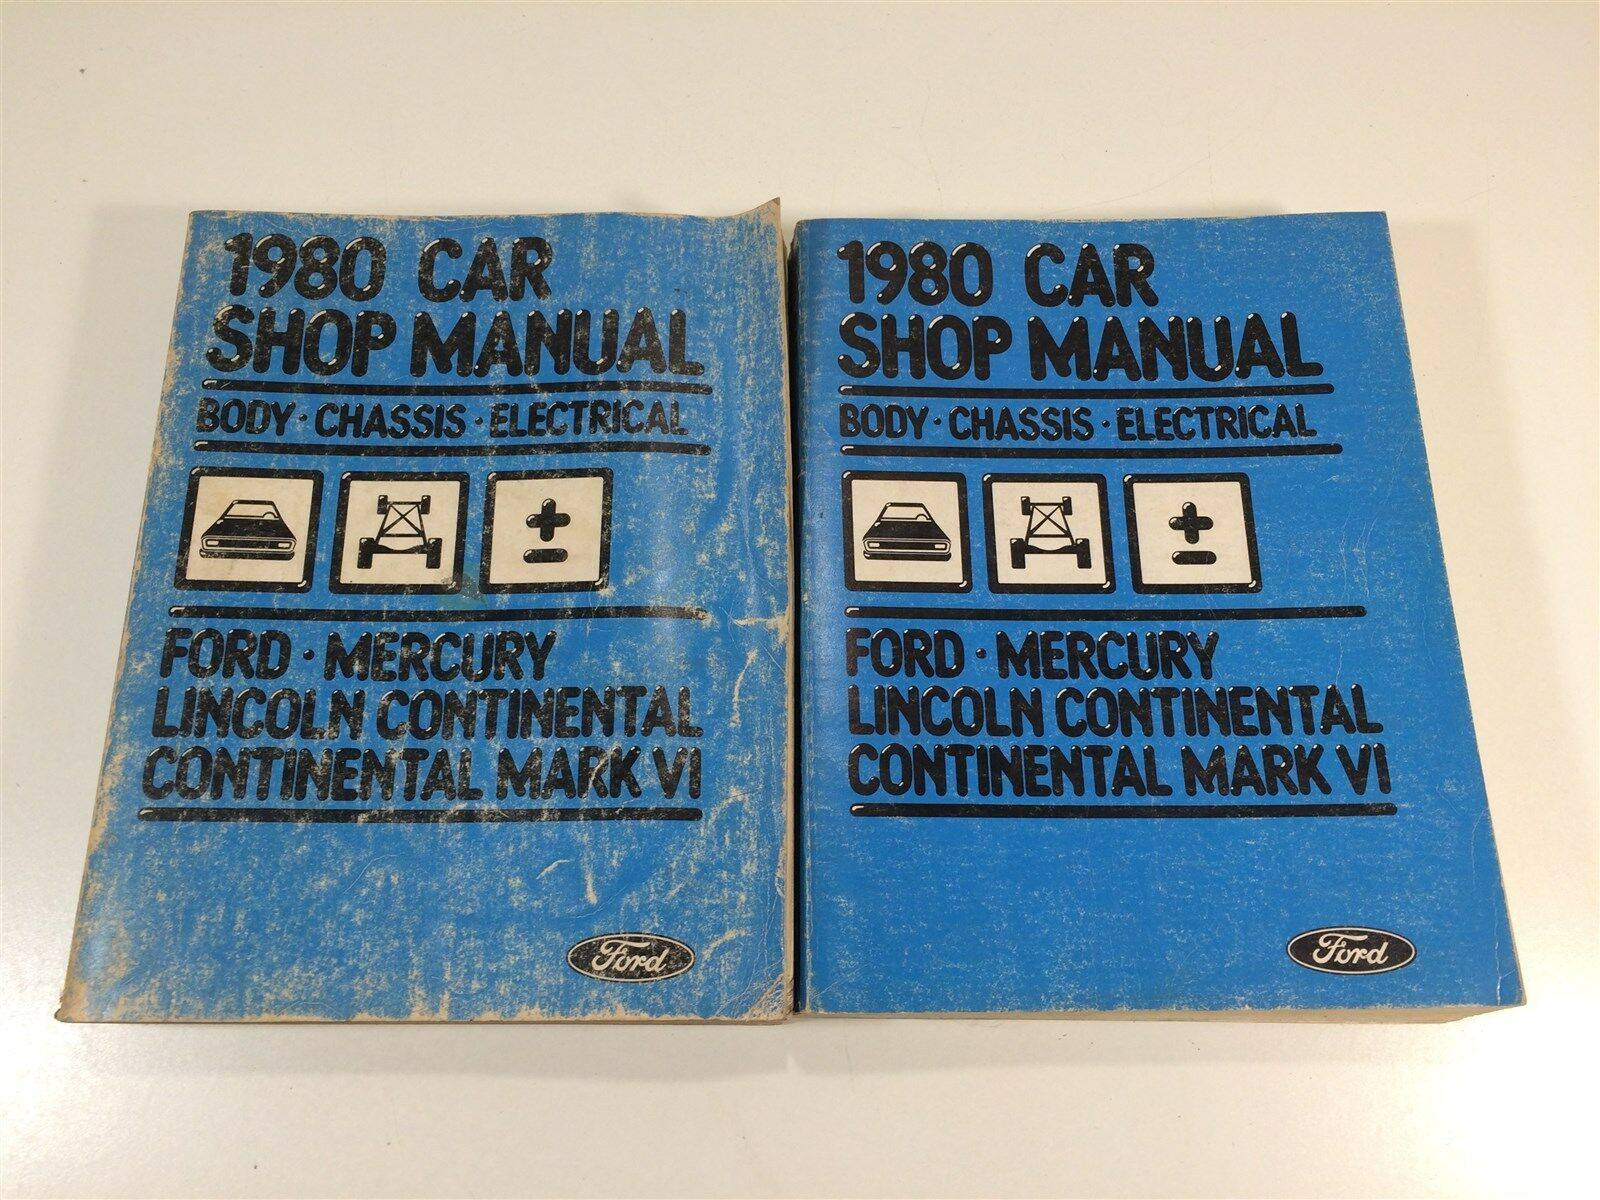 1980 Ford Car Shop Manual Body Chassis Electrical Mercury Lincoln  Continental 1 of 12Only 2 available See More